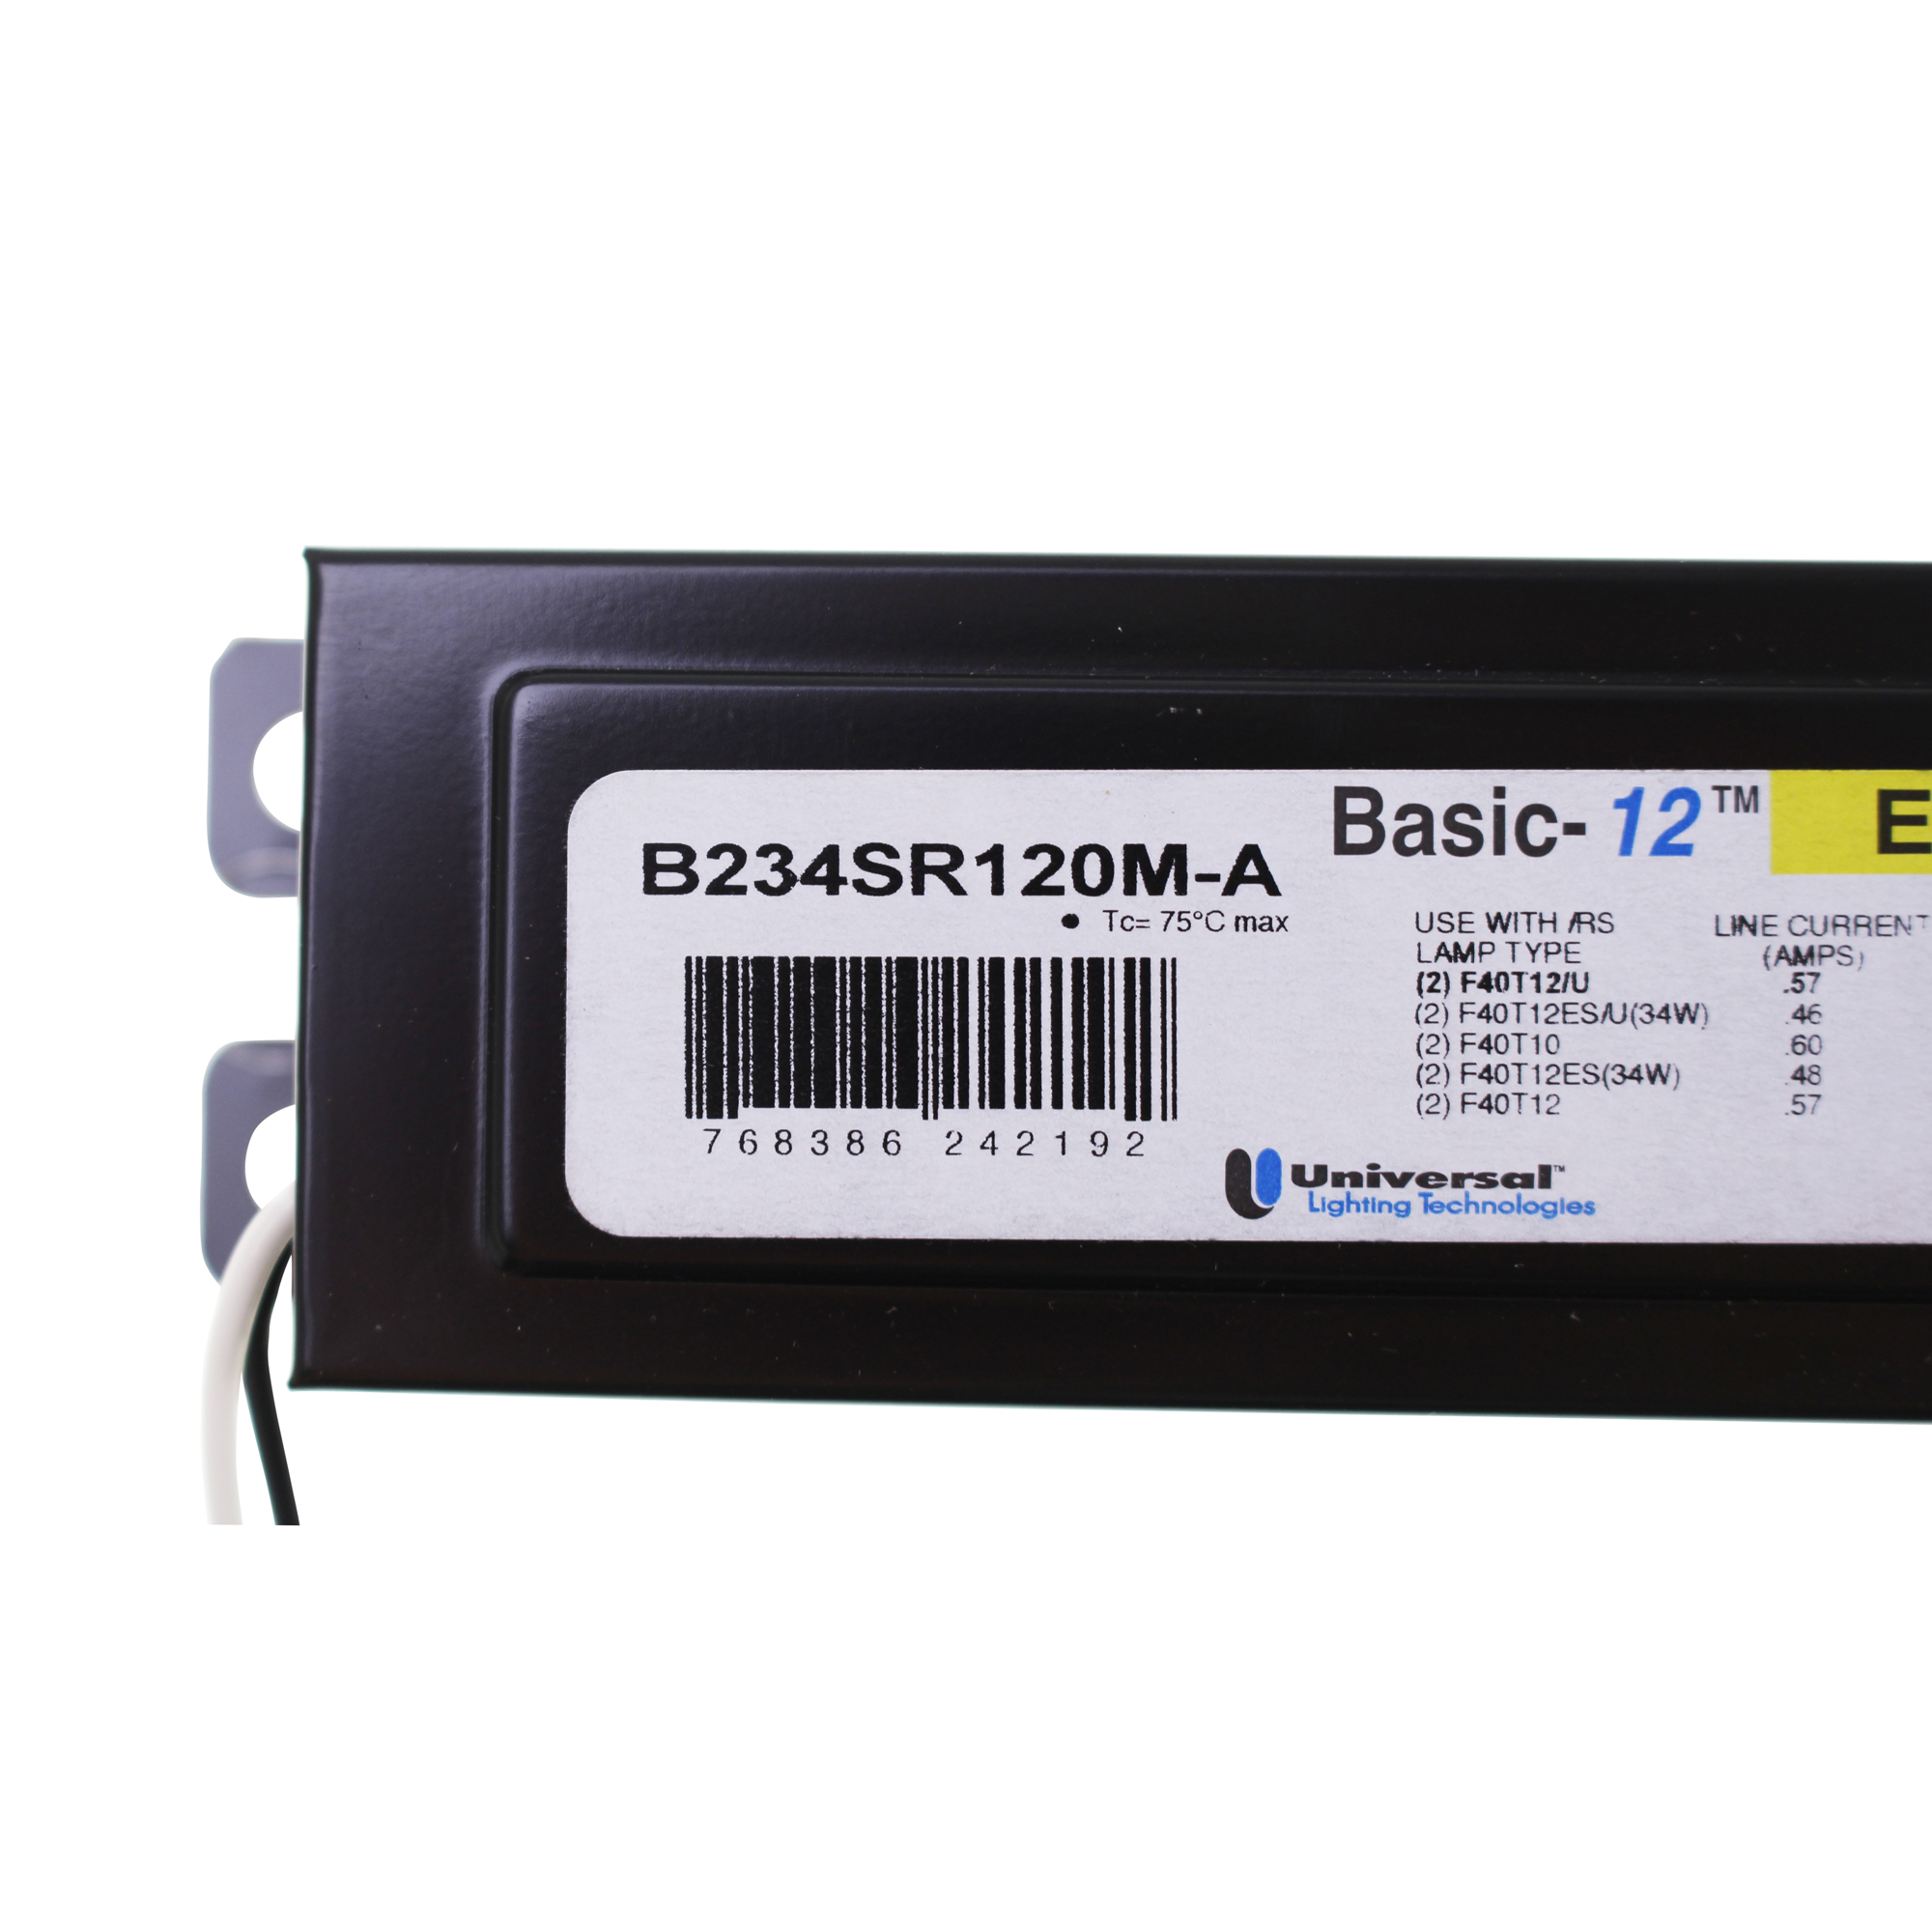 Ir2156 Electronic Ballast For Cfl Compact Fluorescent Lamp